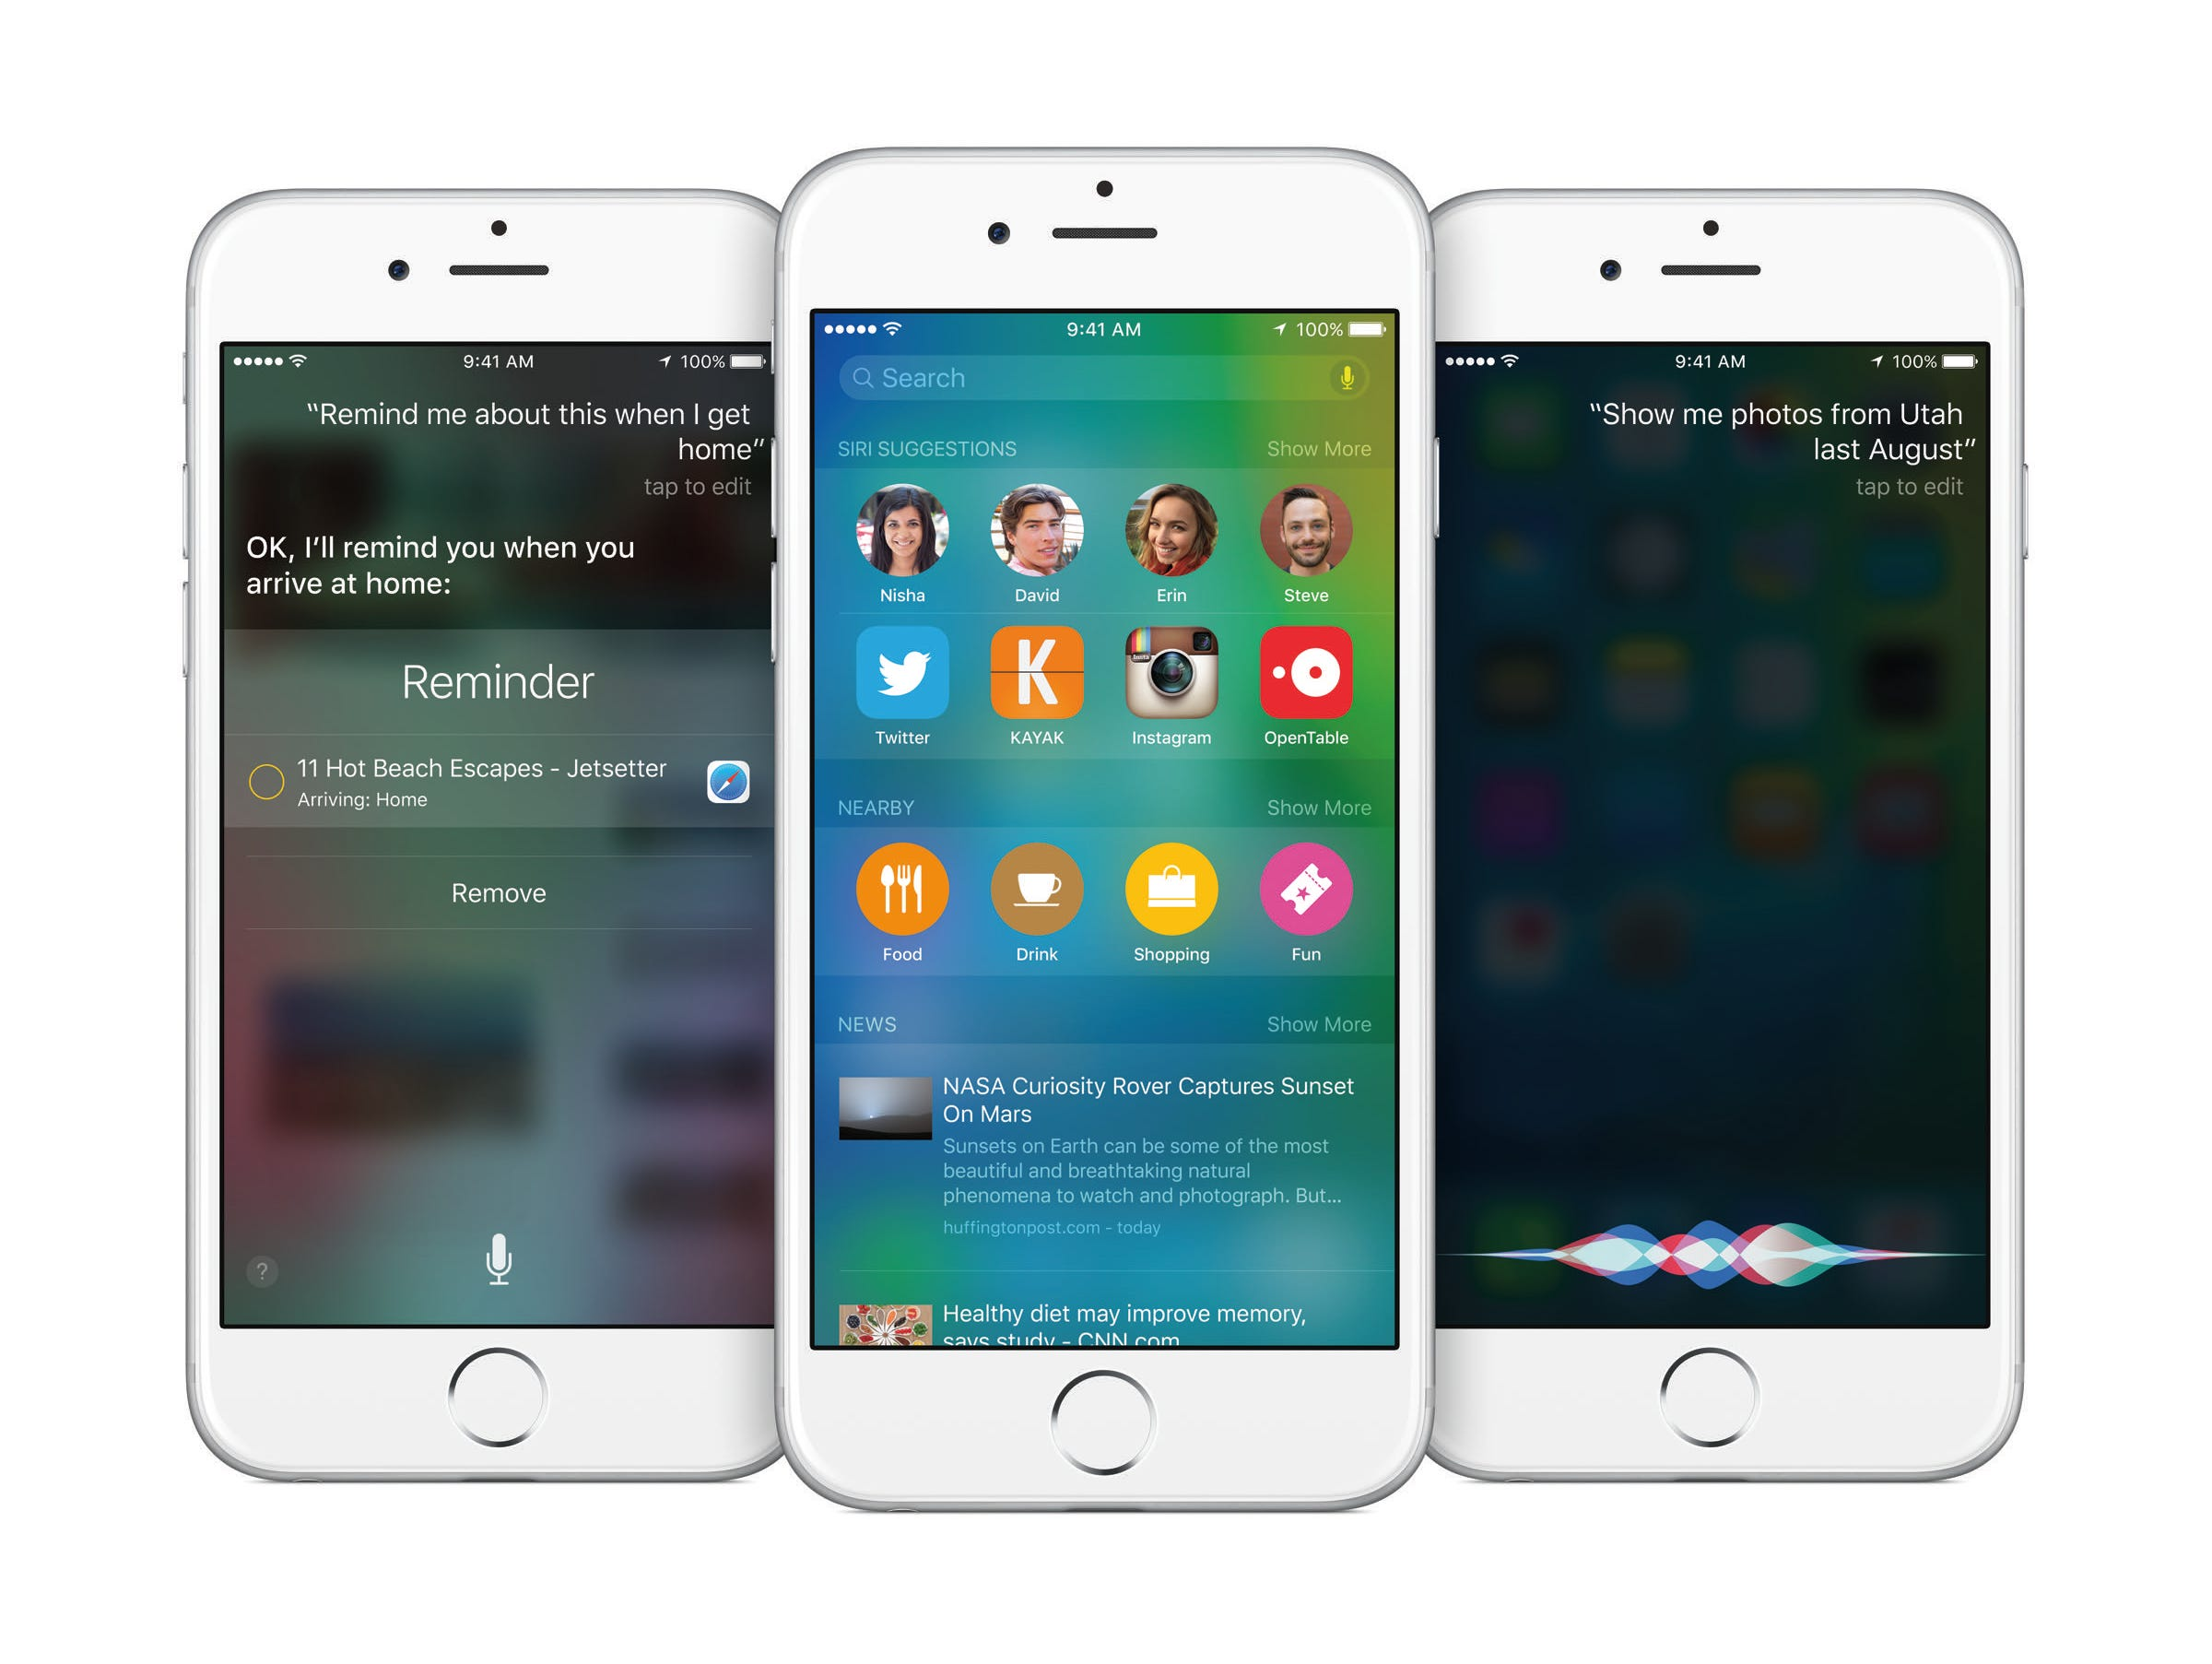 iOS 9 software is at the core of iPhones and iPads